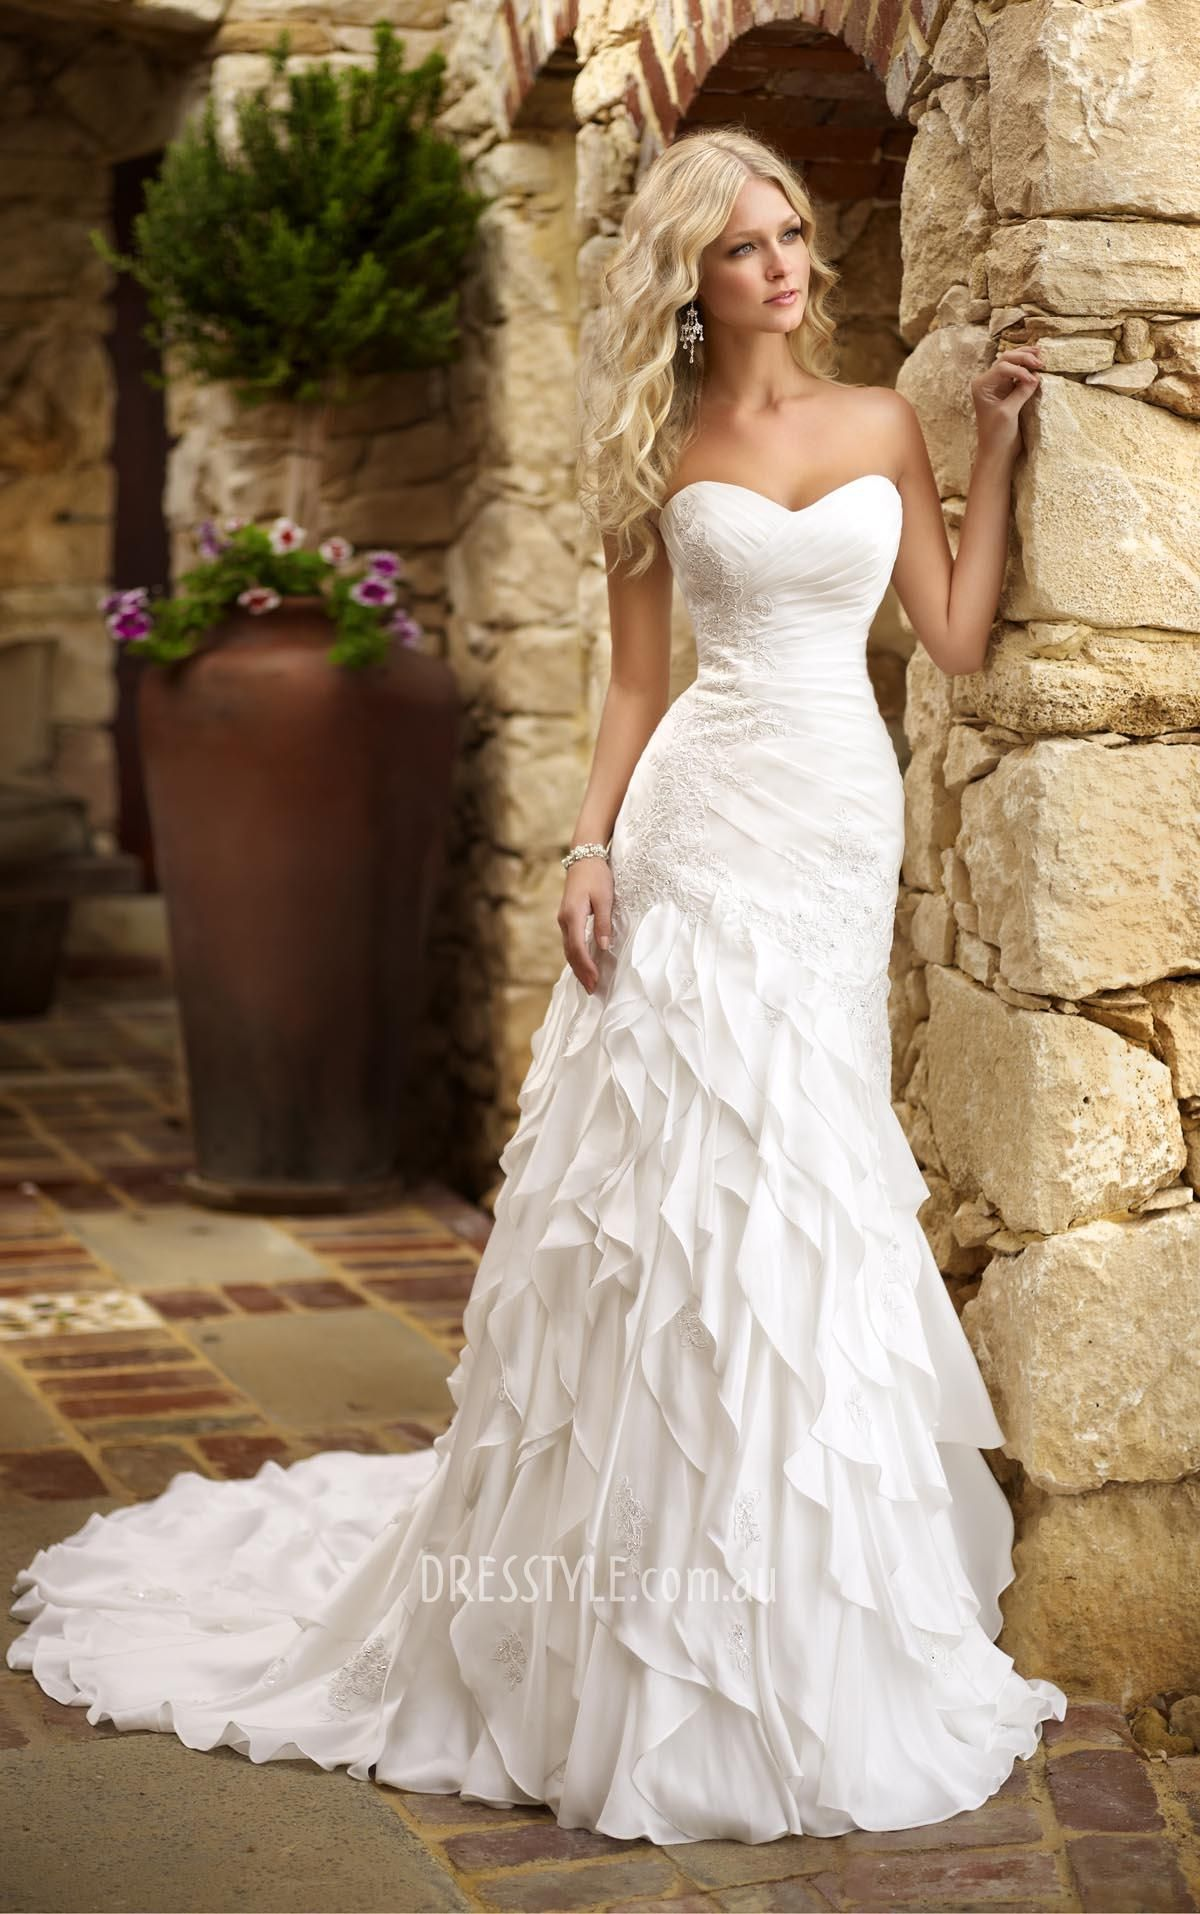 Sweetheart strapless wedding dress  FOUND IT sweetheart strapless fit and flare tiered ruffled skirt